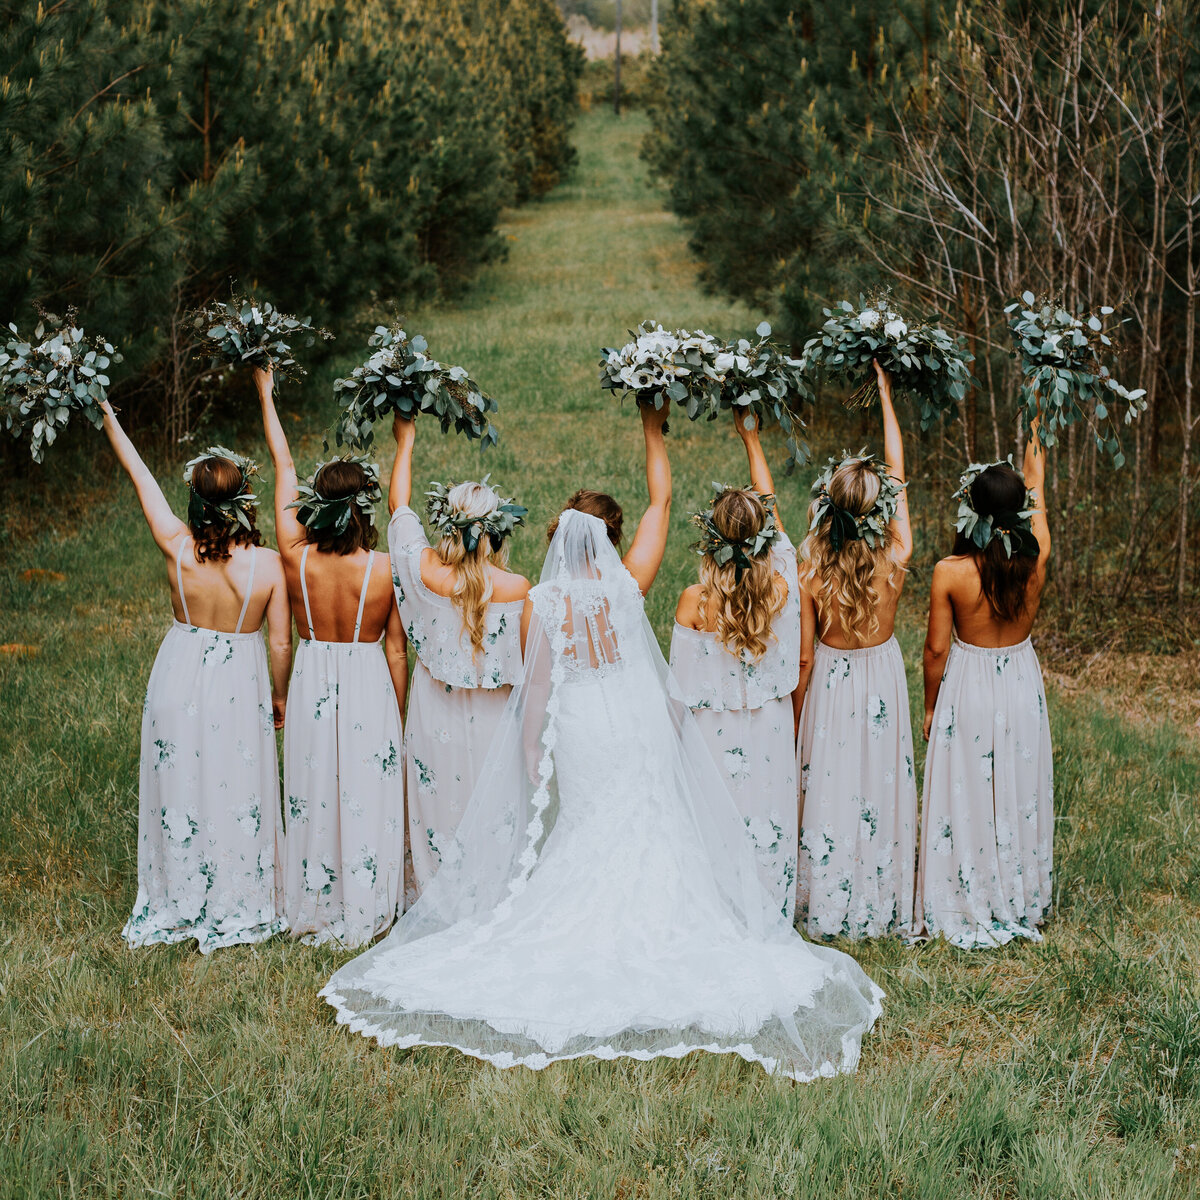 Boho bridesmaids and bride stand in a field with their bouquets in the air, wearing floral crowns at a rustic wedding.